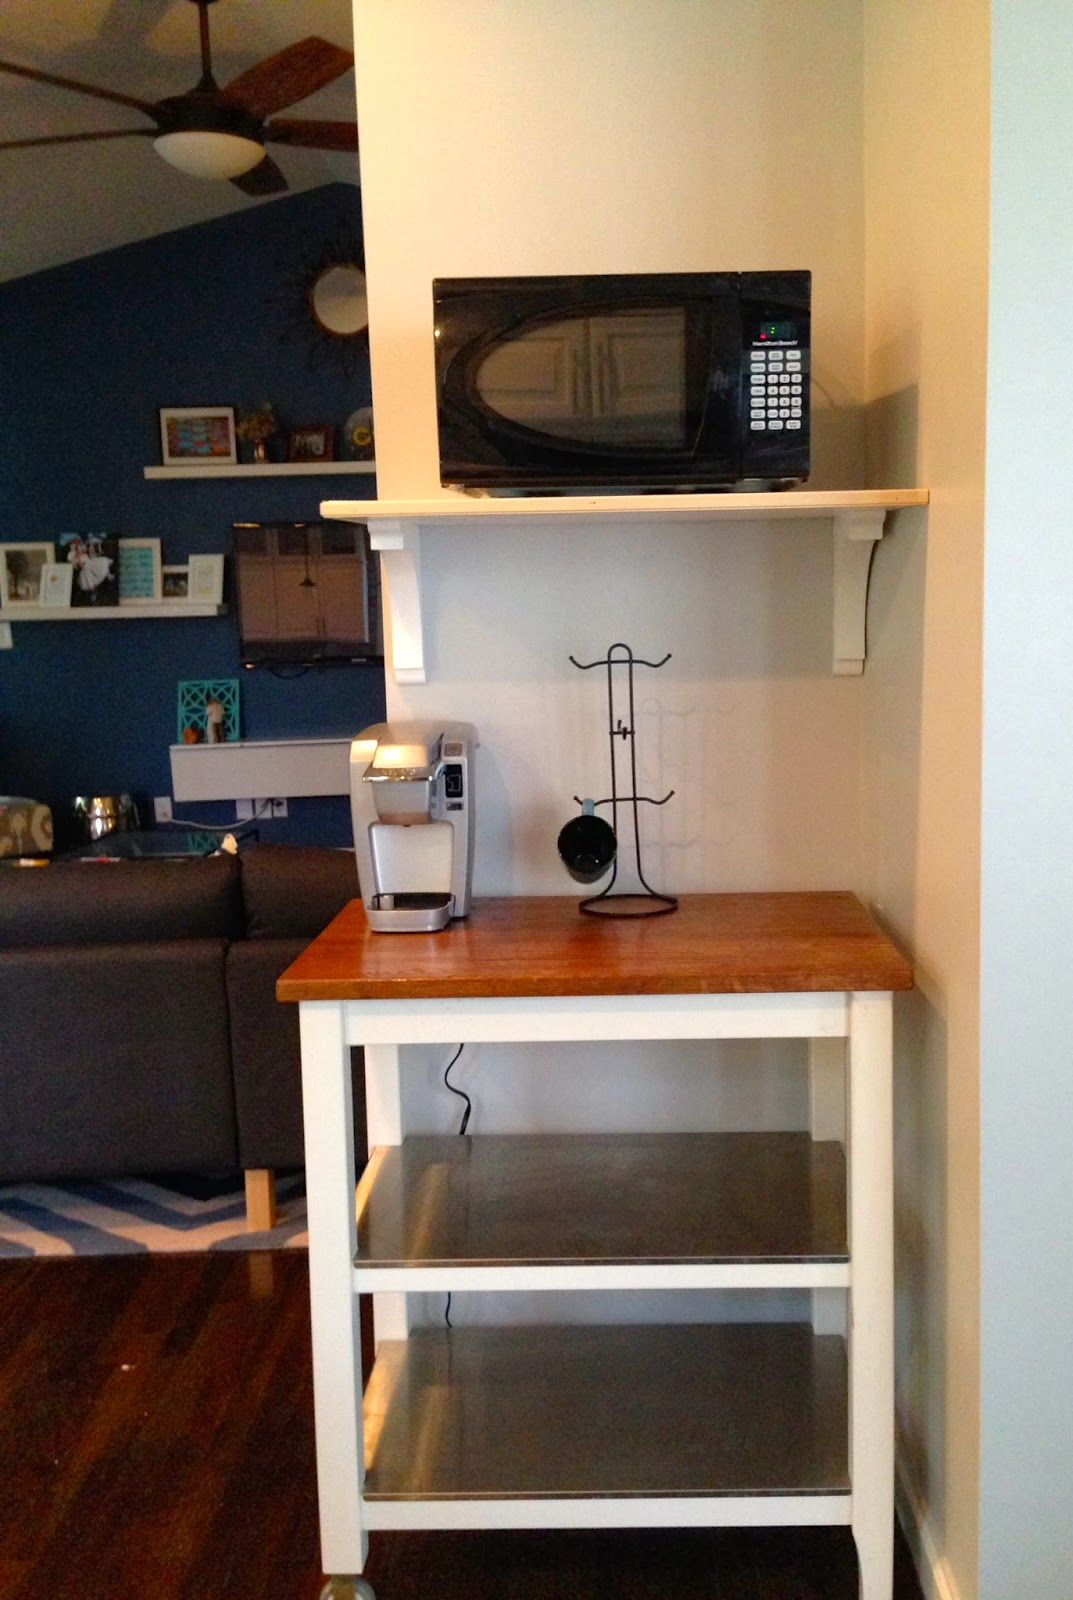 Furniture, DIY Wood Wall Mounted Microwave Shelf Above Table With Rack  Storage In The Corner For Kitchen With Small Spaces Ideas ~ Microwave Wall  Shelf